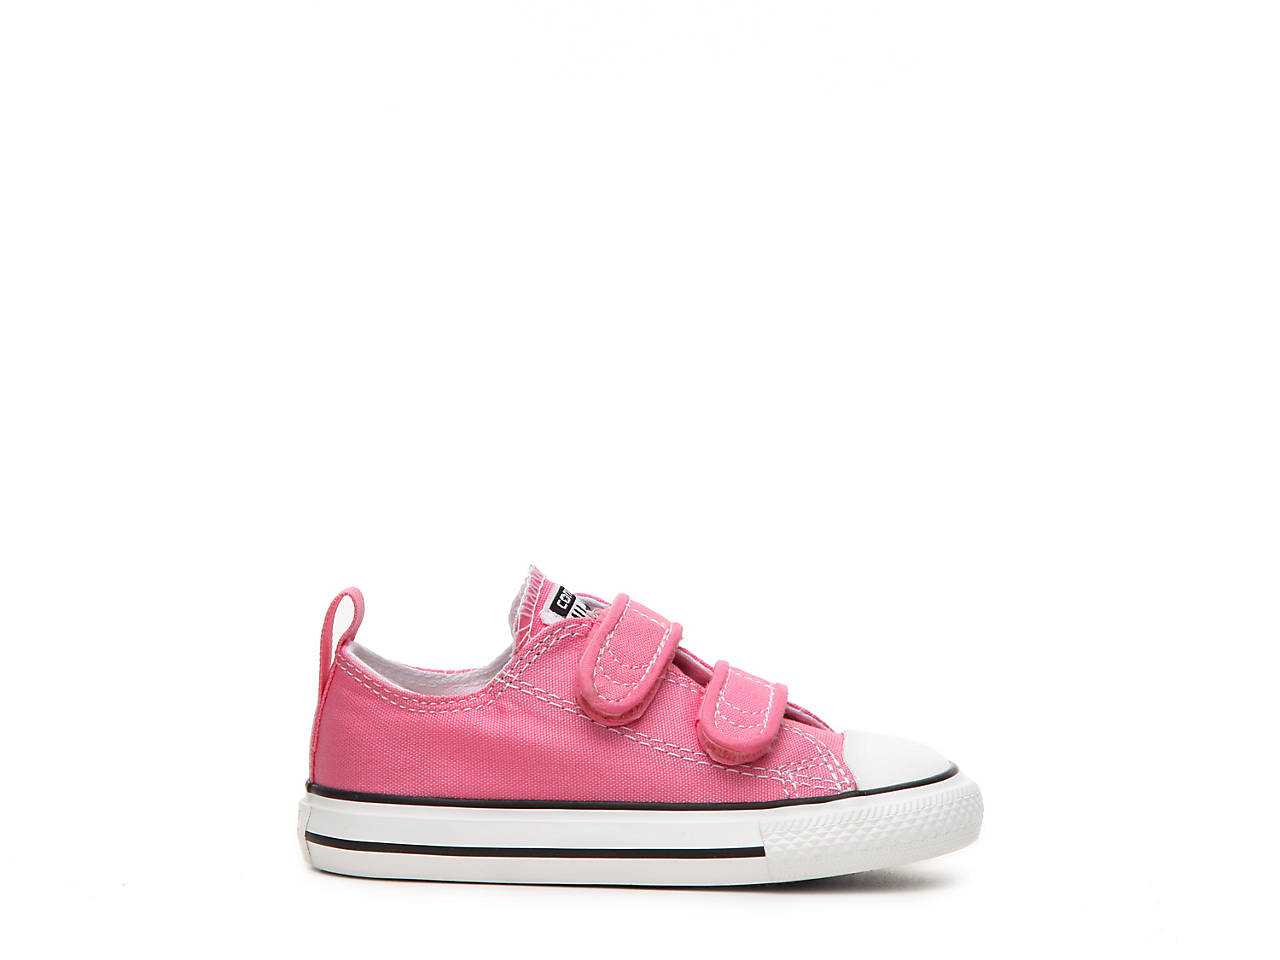 d77065706190 Converse Chuck Taylor All Star Infant   Toddler Sneaker Kids Shoes